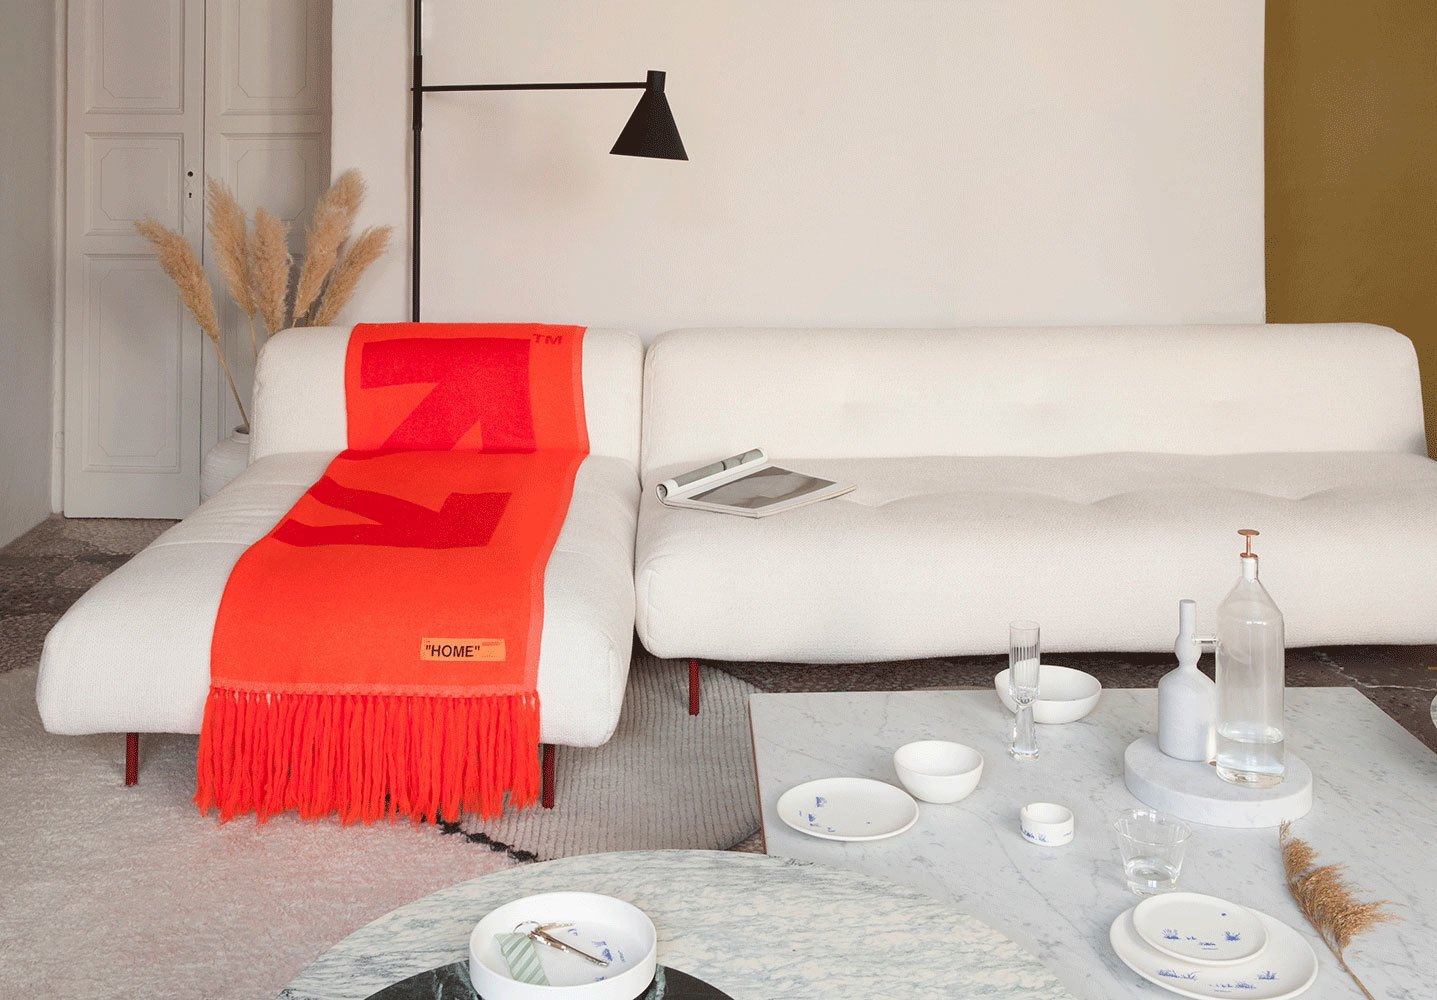 White couch with red throw and a smattering of plates and bowls.